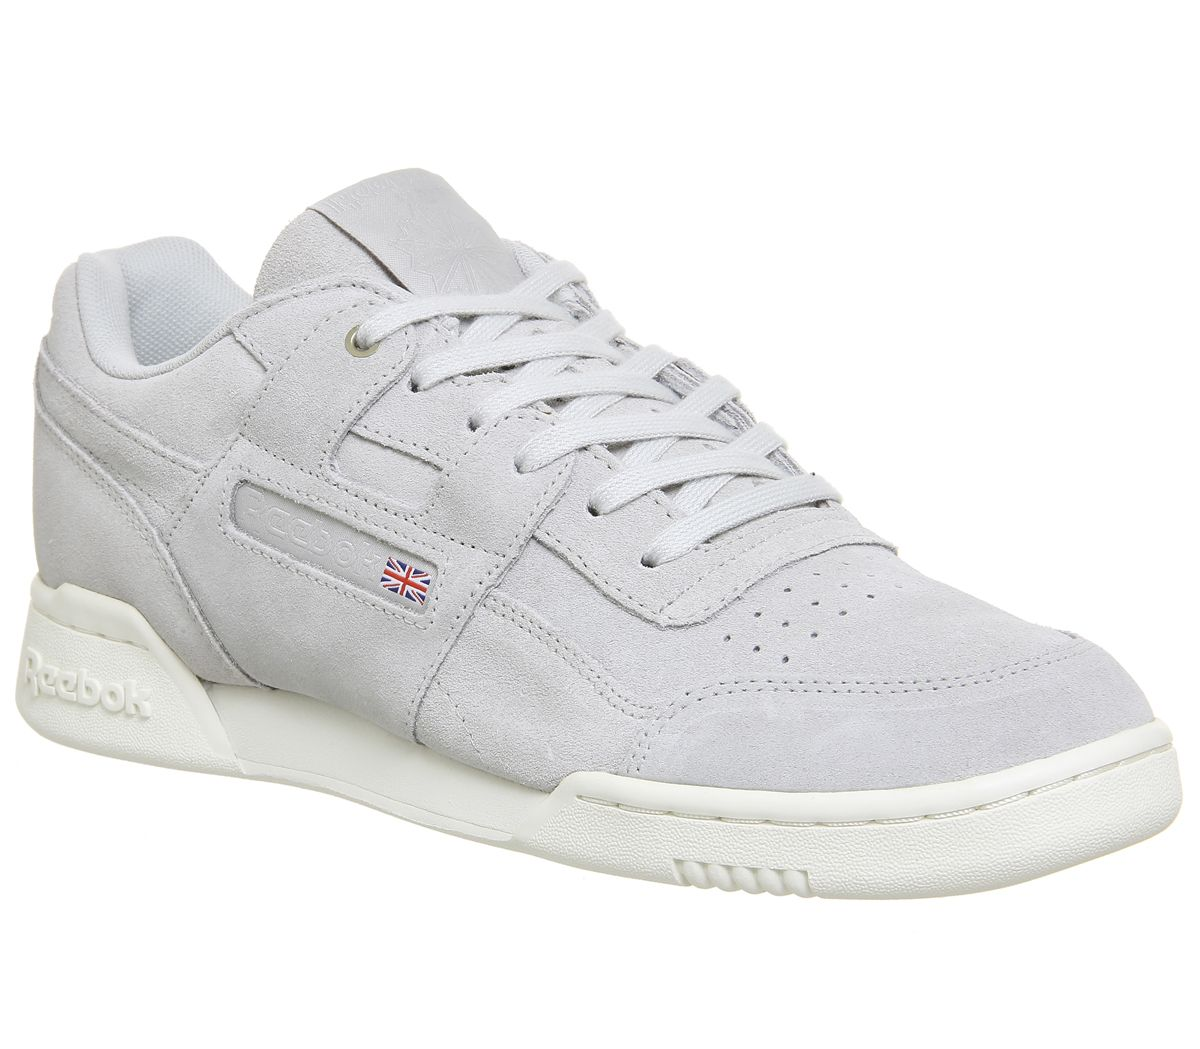 9afeb2019758c Reebok Workout Plus Trainers Mcc Marble Chalk - His trainers